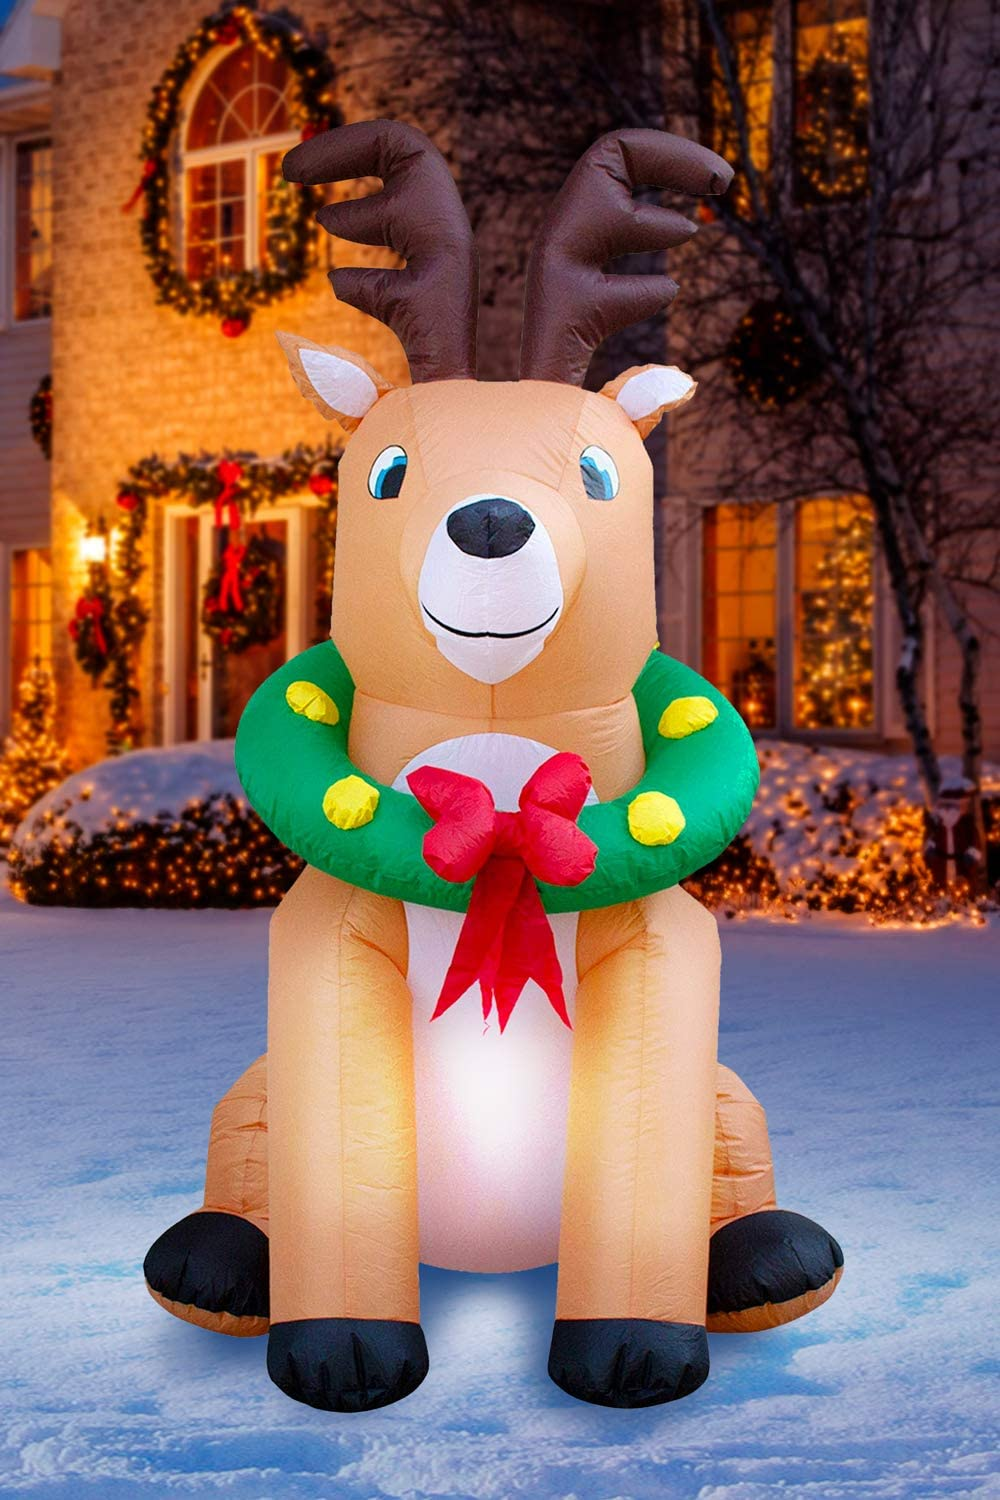 Holidayana Reindeer with Wreath Inflatable Decoration 6 Foot Christmas Reindeer with Wreath Inflatable Yard Decor Includes Built in Bulb Tie Down